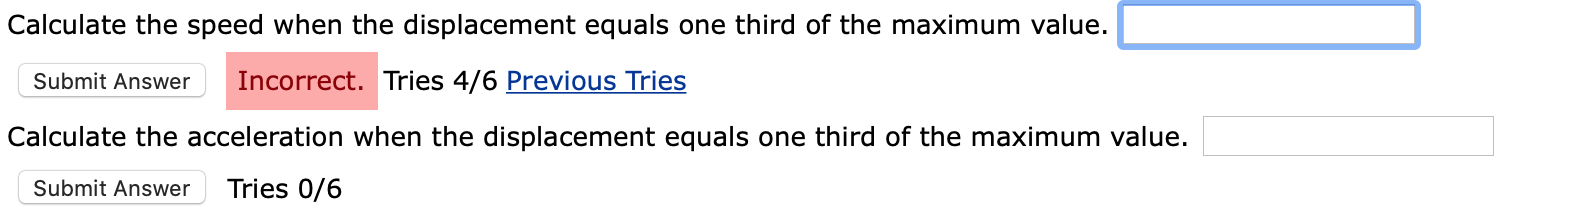 Calculate the speed when the displacement equals one third of the maximum value. Incorrect. Tries 4/6 Previous Tries Submit Answer Calculate the acceleration when the displacement equals one third of the maximum value. Tries 0/6 Submit Answer